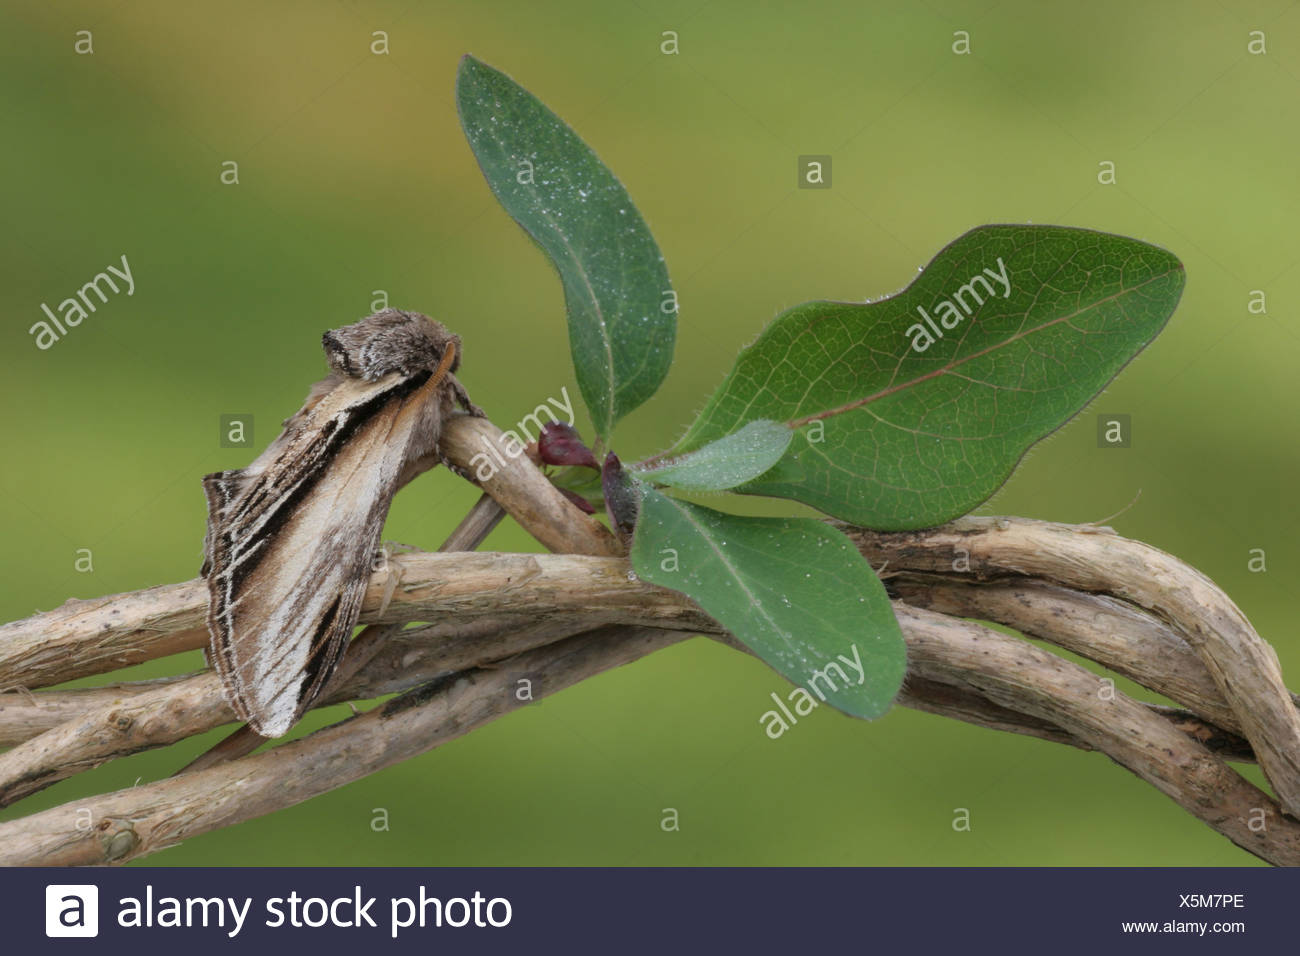 Swallow Prominent (Pheosia tremula) adult, resting on Honeysuckle (Lonicera periclymenum) stem, with raindrops on leaves, - Stock Image